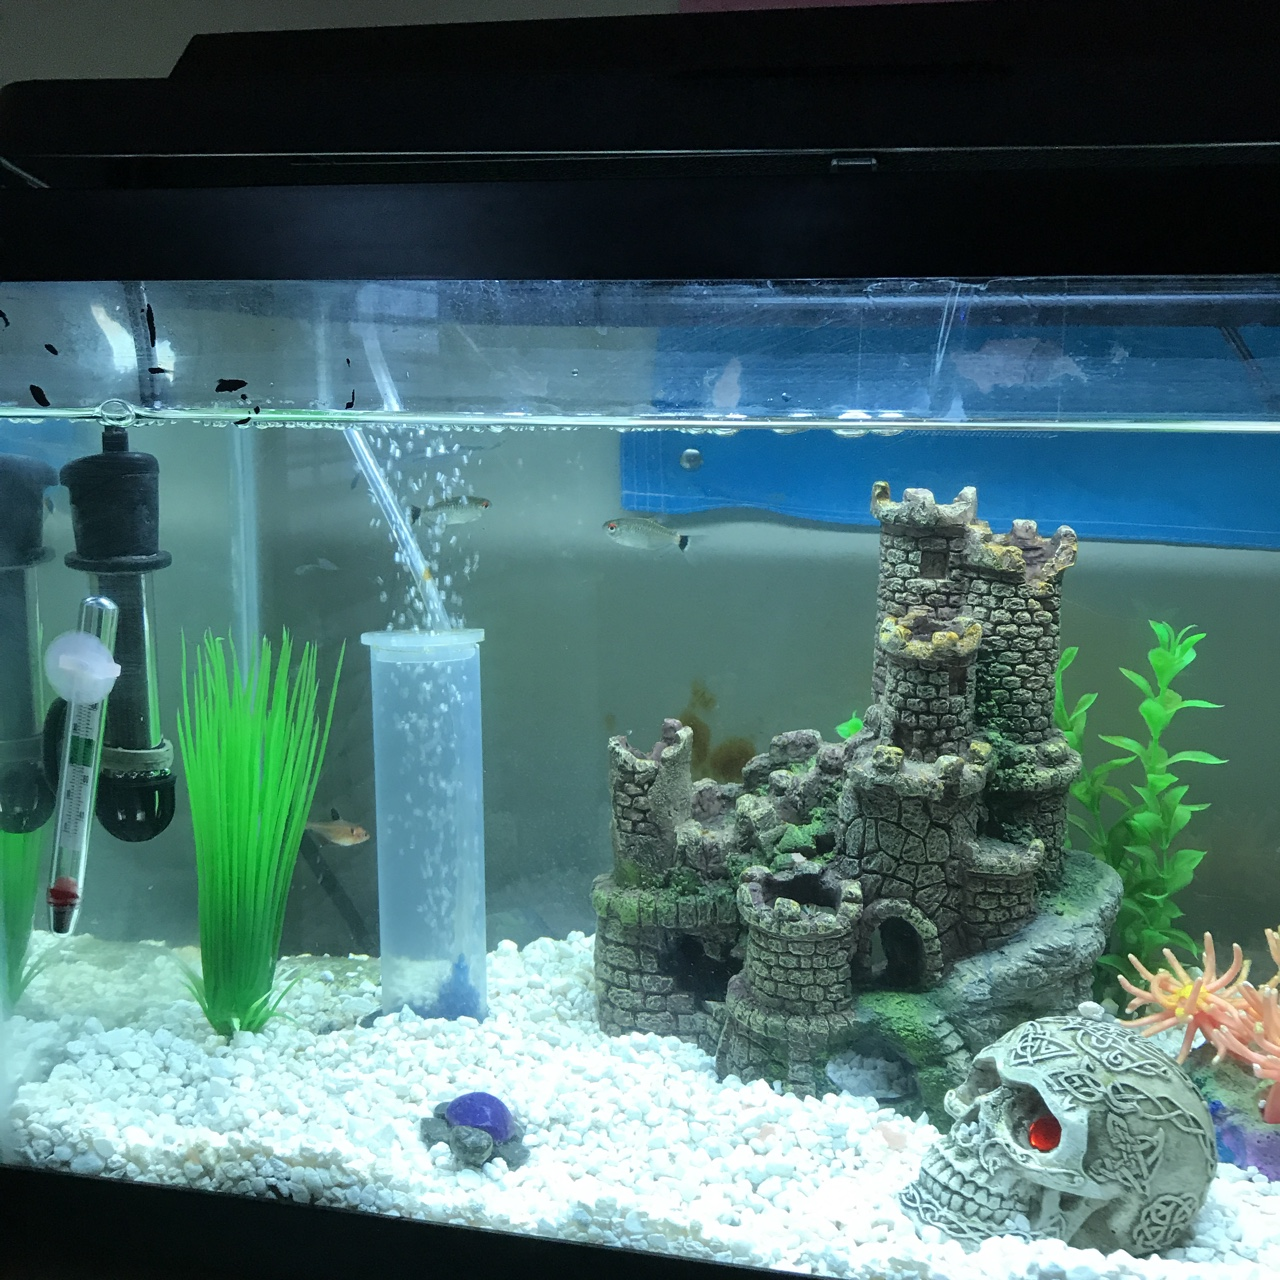 10 gallon fish tank with 3 red eyed tetras and a red    - Depop